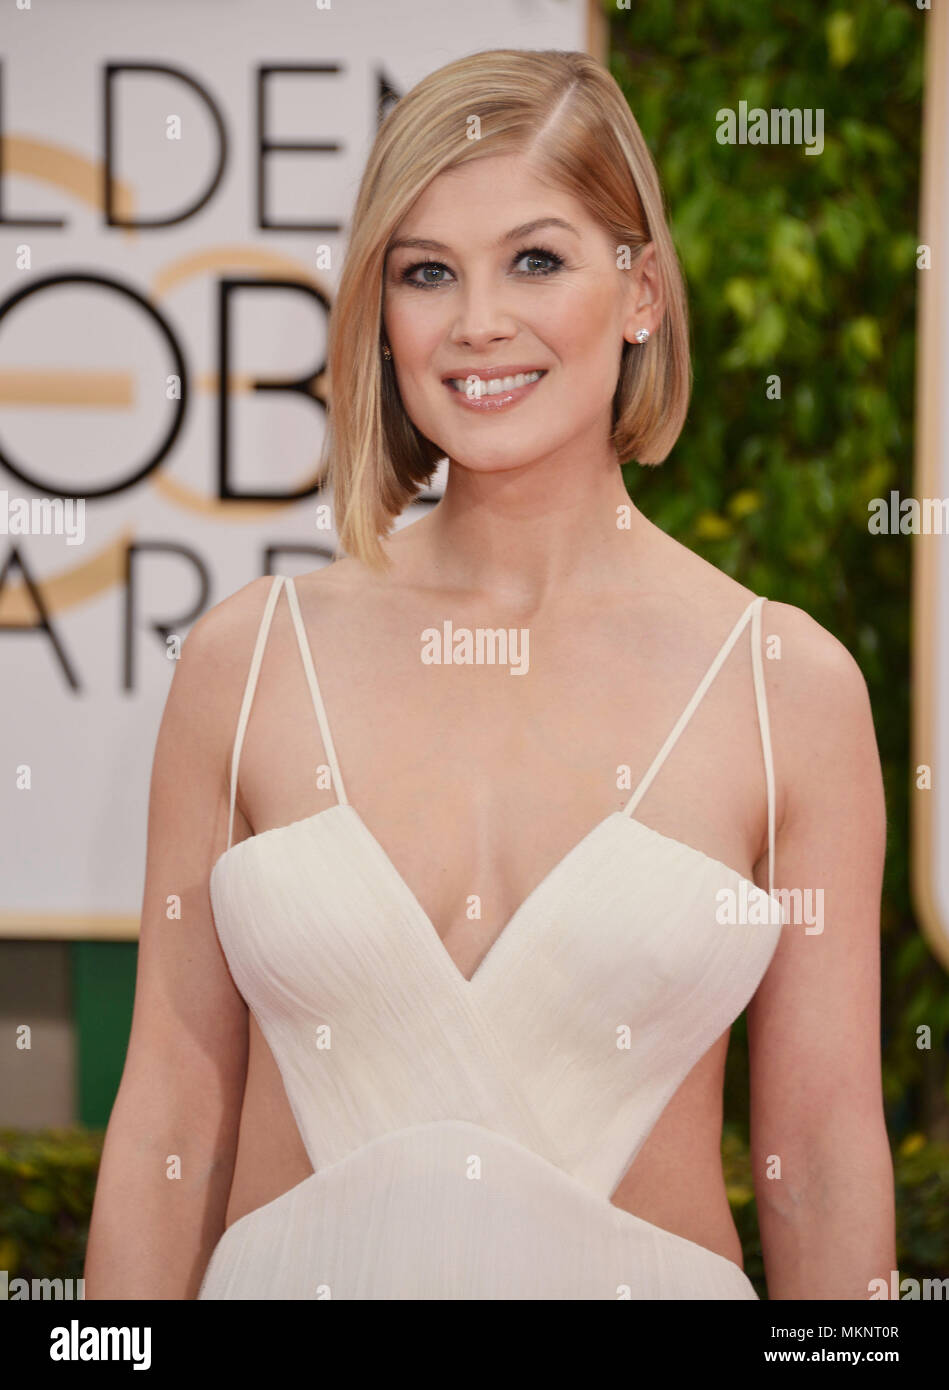 Rosamund Pike 555 at the  72th Golden Globes Awards 2015 at the Beverly Hilton in Los Angeles. January 11, 2015Rosamund Pike 555  Event in Hollywood Life - California,  Red Carpet Event, Vertical, USA, Film Industry, Celebrities,  Photography, Bestof, Arts Culture and Entertainment, Topix Celebrities fashion / one person, Vertical, Best of, Hollywood Life, Event in Hollywood Life - California,  Red Carpet and backstage, USA, Film Industry, Celebrities,  movie celebrities, TV celebrities, Music celebrities, Photography, Bestof, Arts Culture and Entertainment,  Topix, headshot, vertical, from th - Stock Image